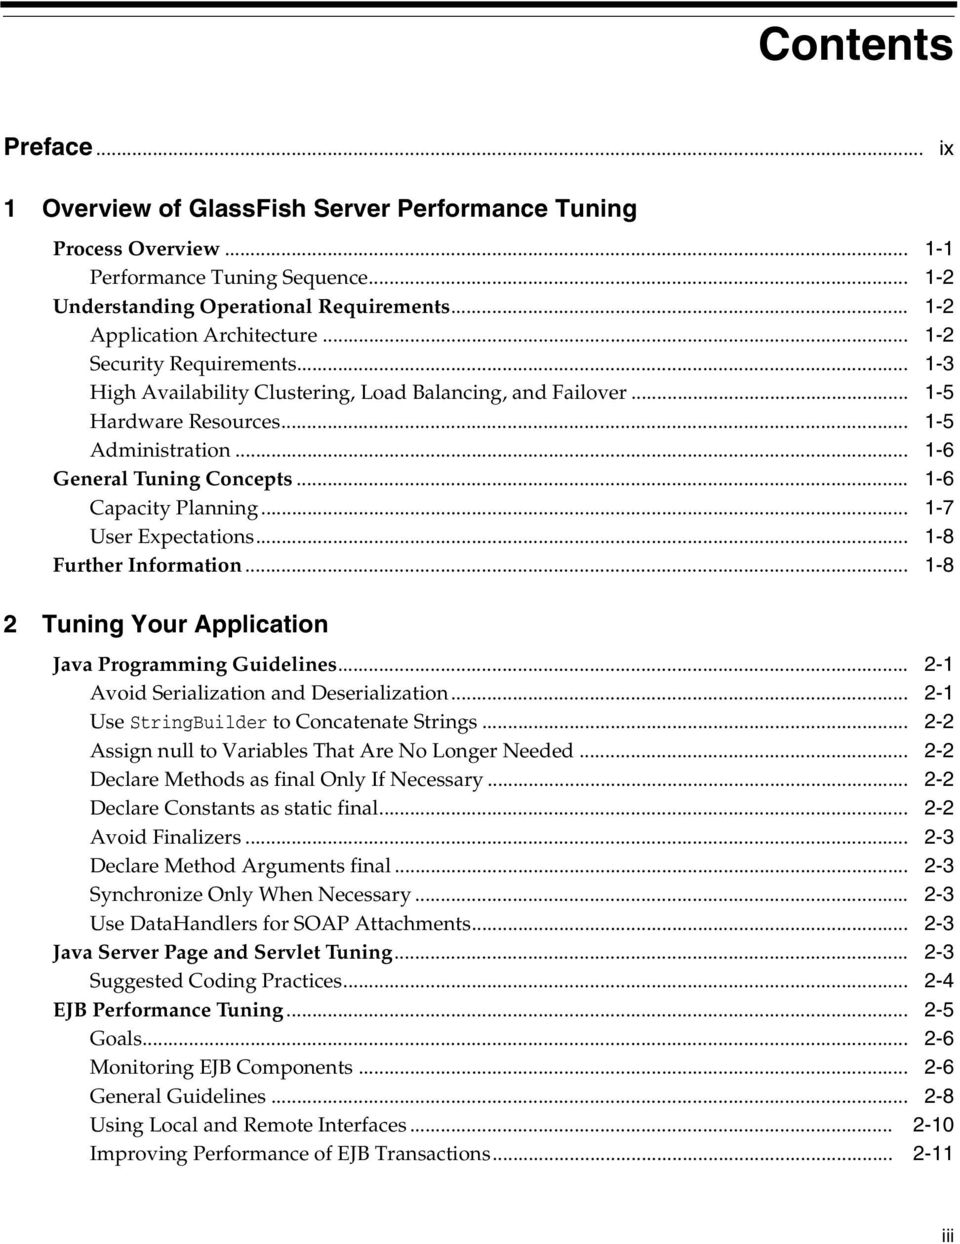 .. 1-6 General Tuning Concepts... 1-6 Capacity Planning... 1-7 User Expectations... 1-8 Further Information... 1-8 2 Tuning Your Application Java Programming Guidelines.